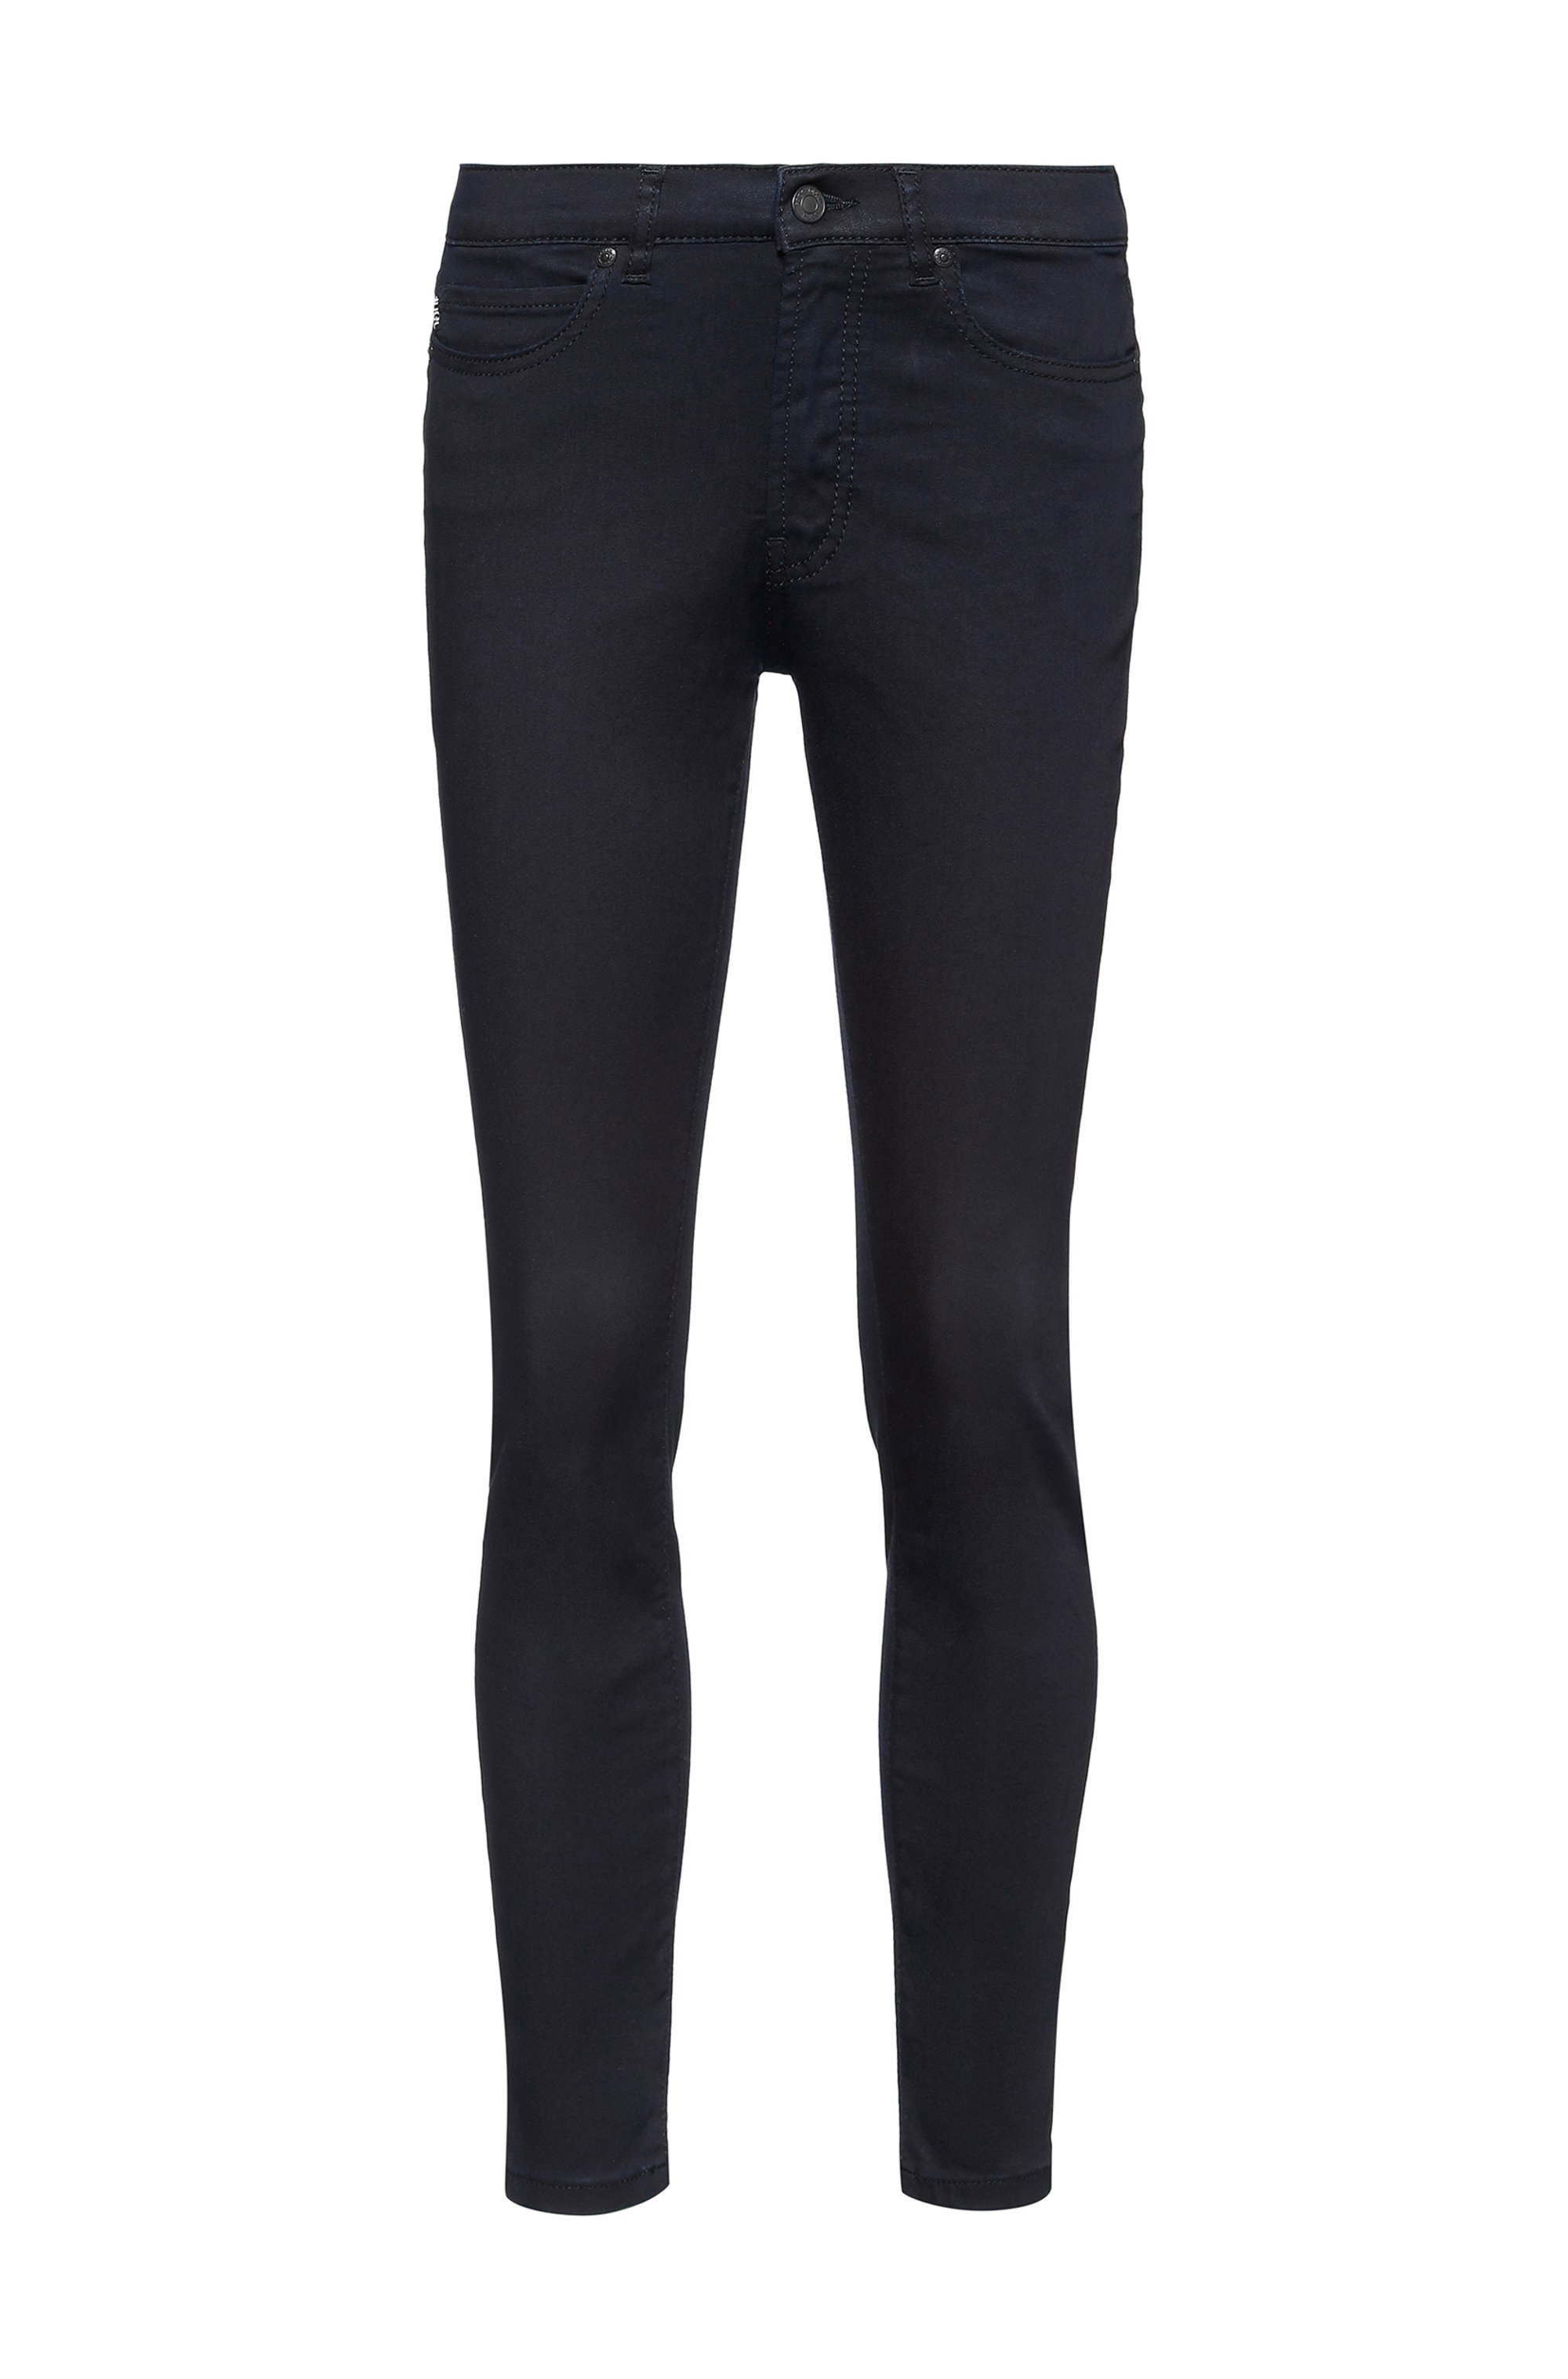 CHARLIE super-skinny-fit jeans in magic-flex denim, Dark Blue